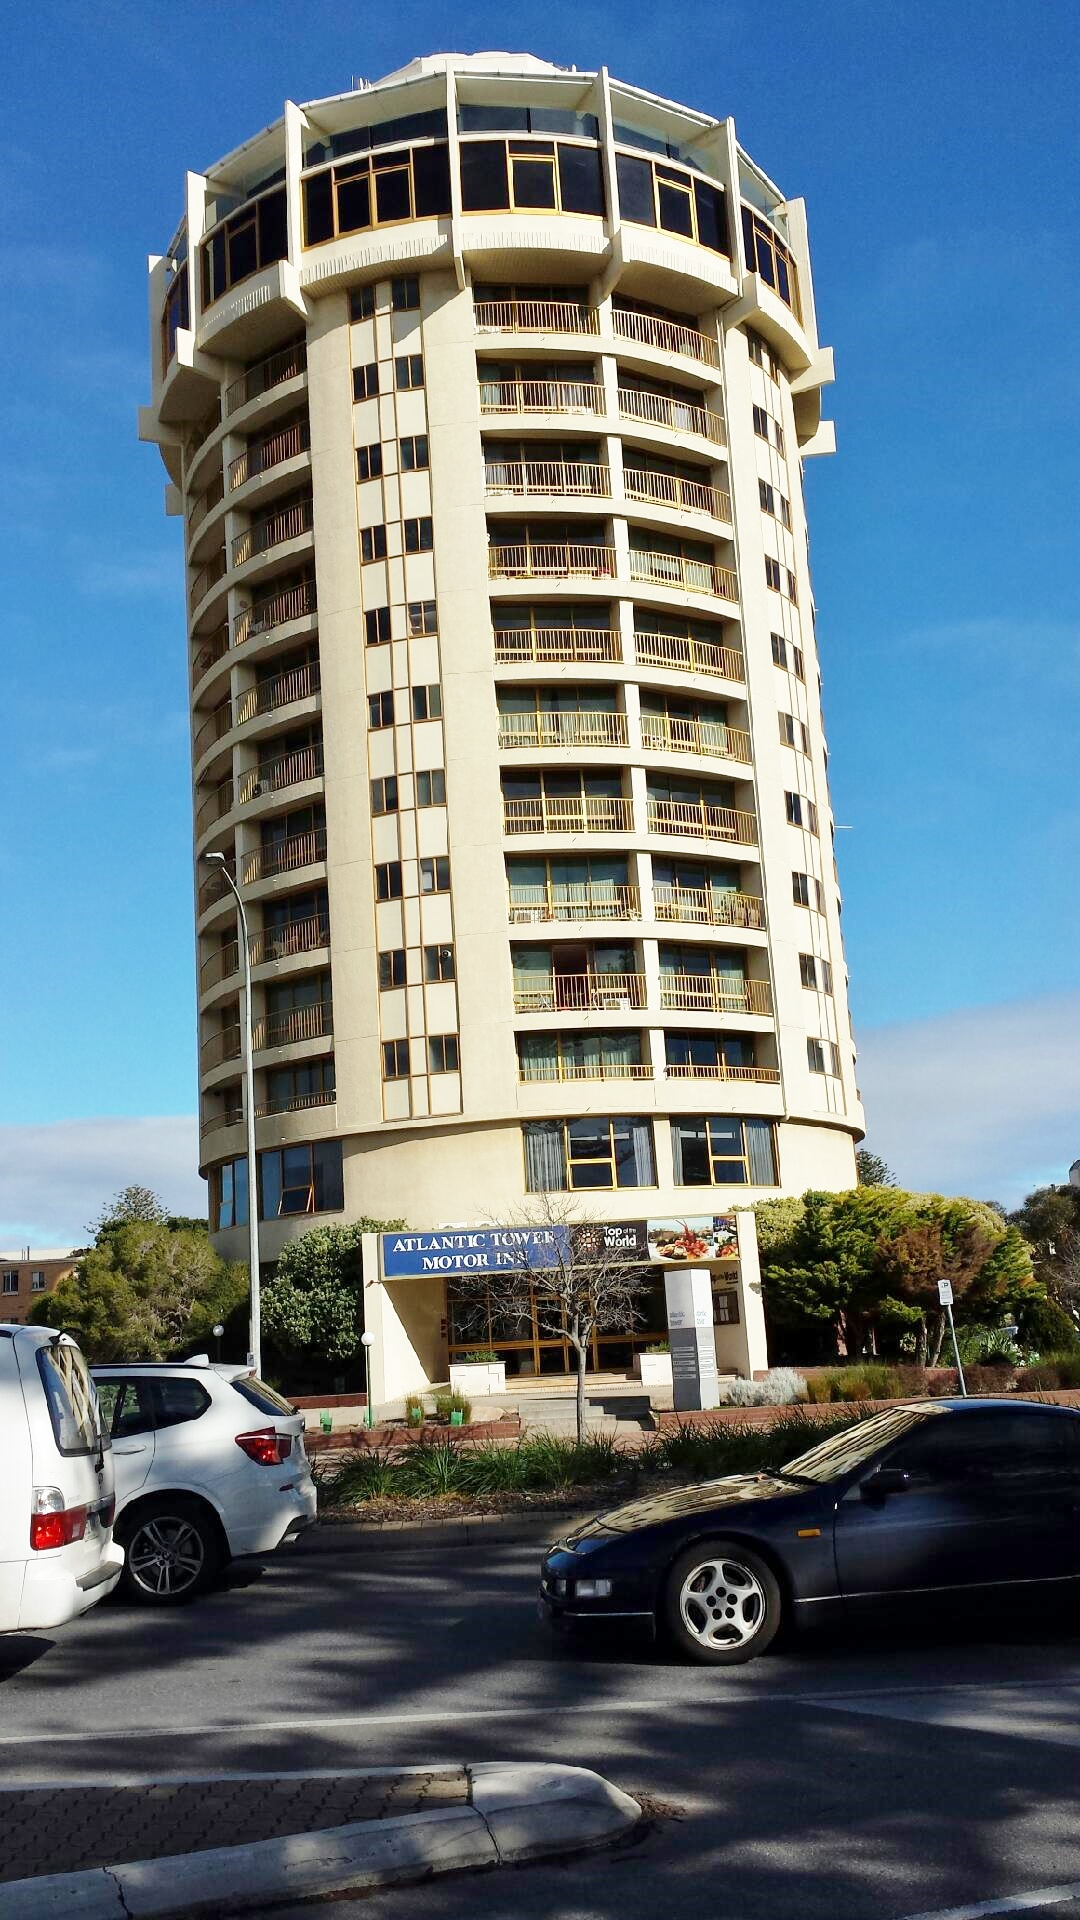 atlantic tower motor inn adelaide